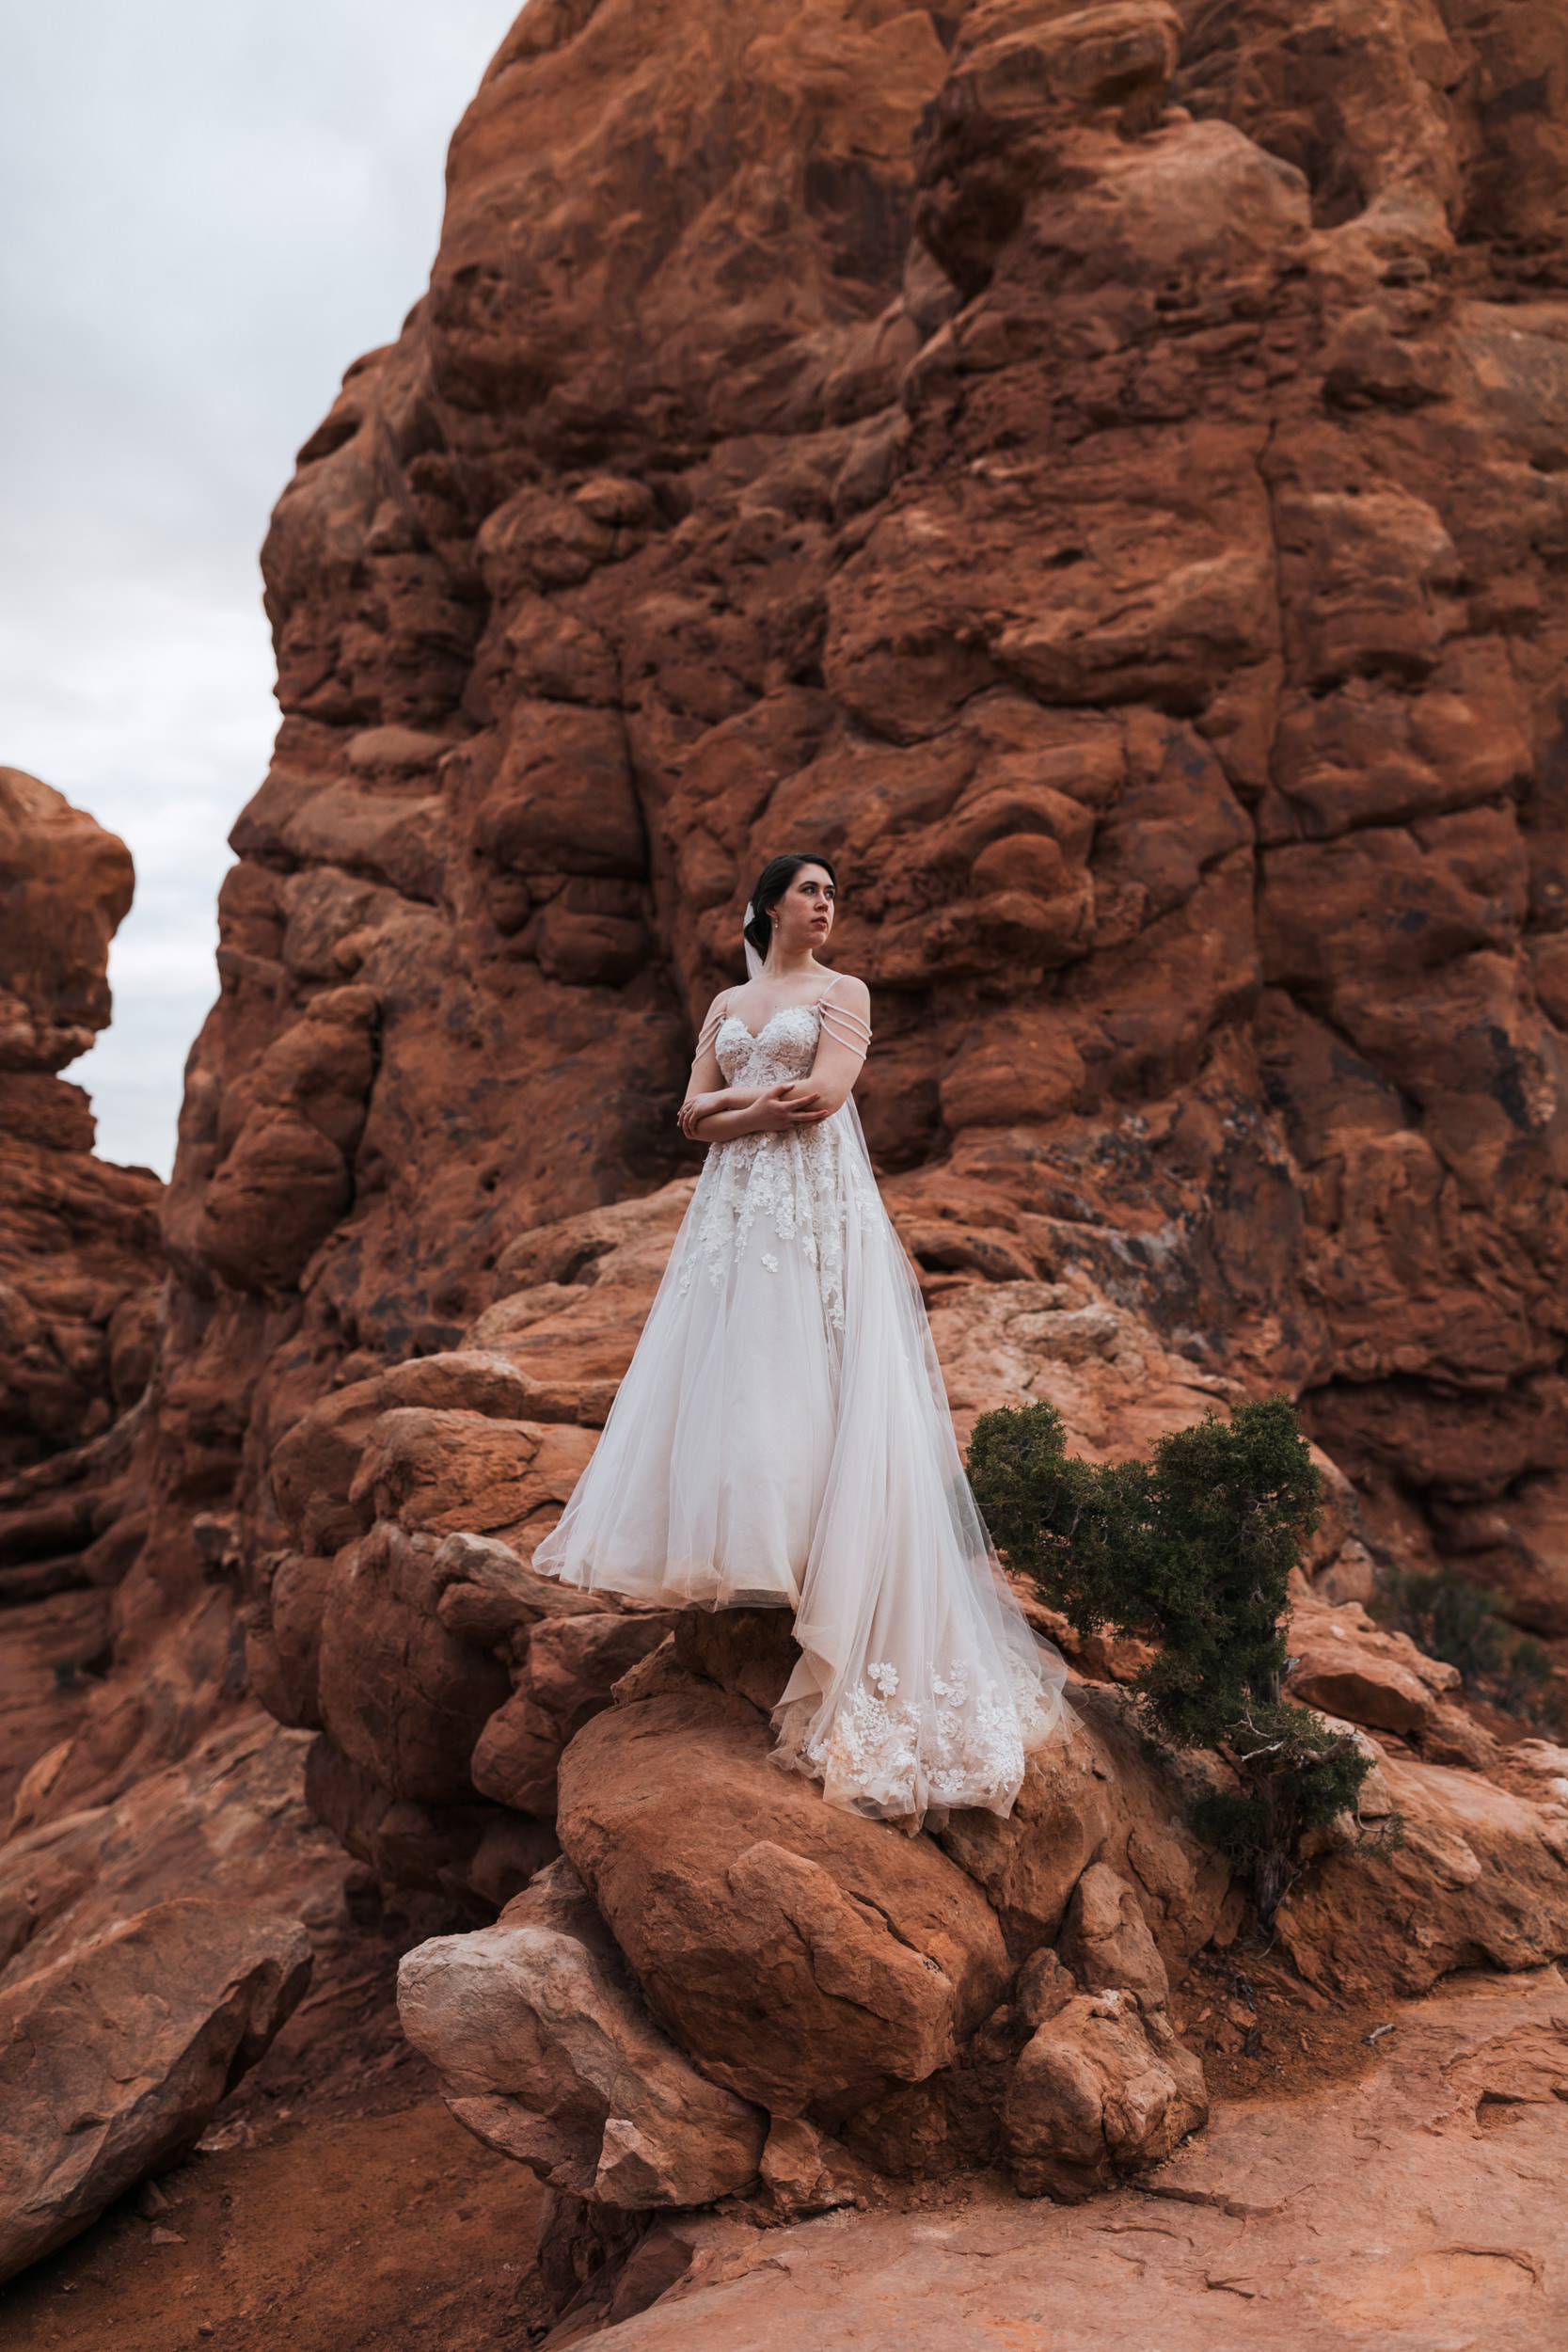 Claire was such a beautiful bride! She came all the way from Minnesota to rock this beautiful dress in the desert.